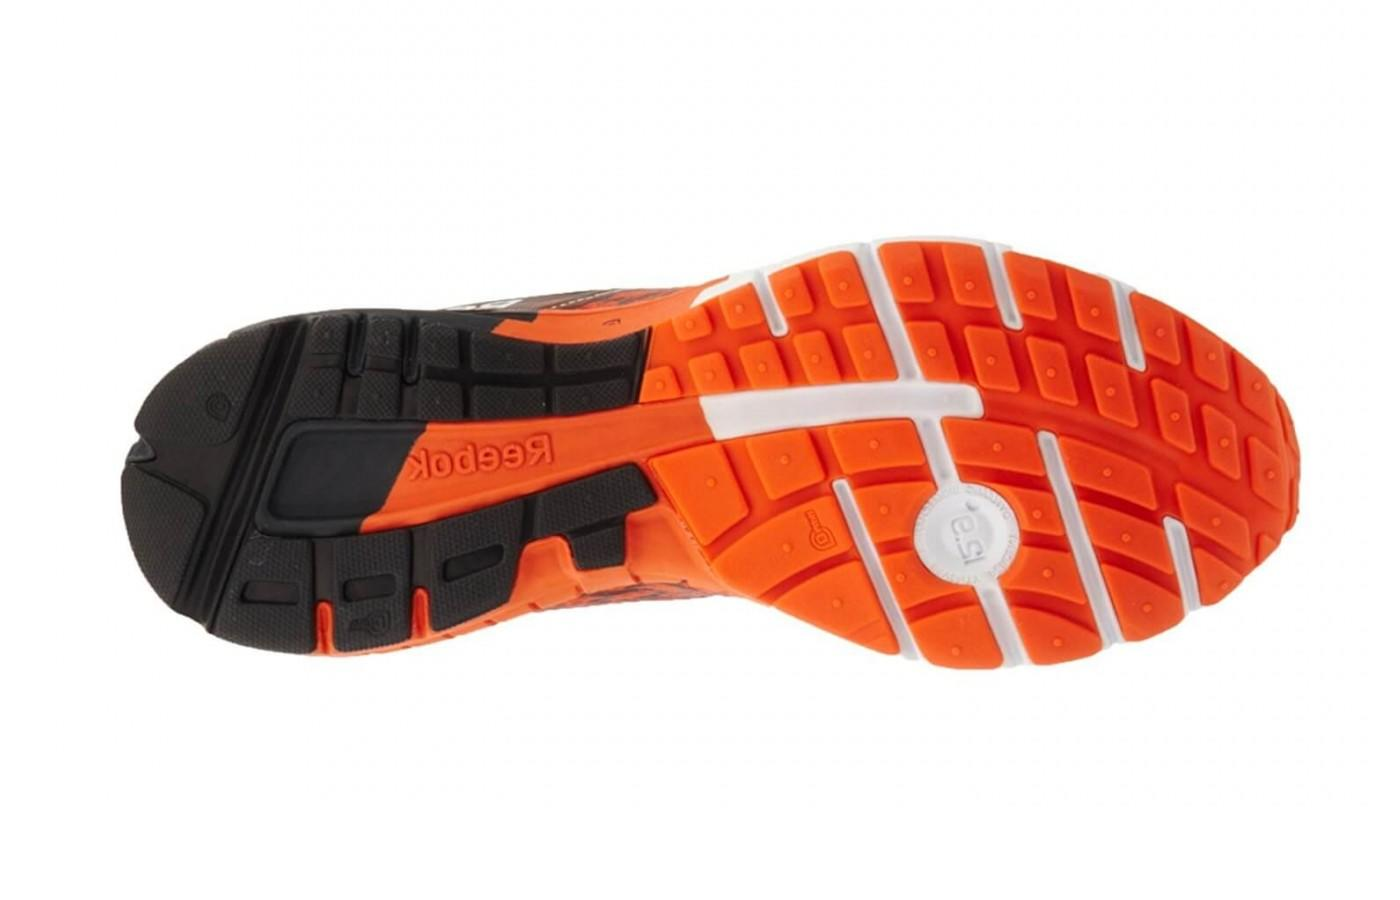 The outsole of the Reebok One Guide 2.0